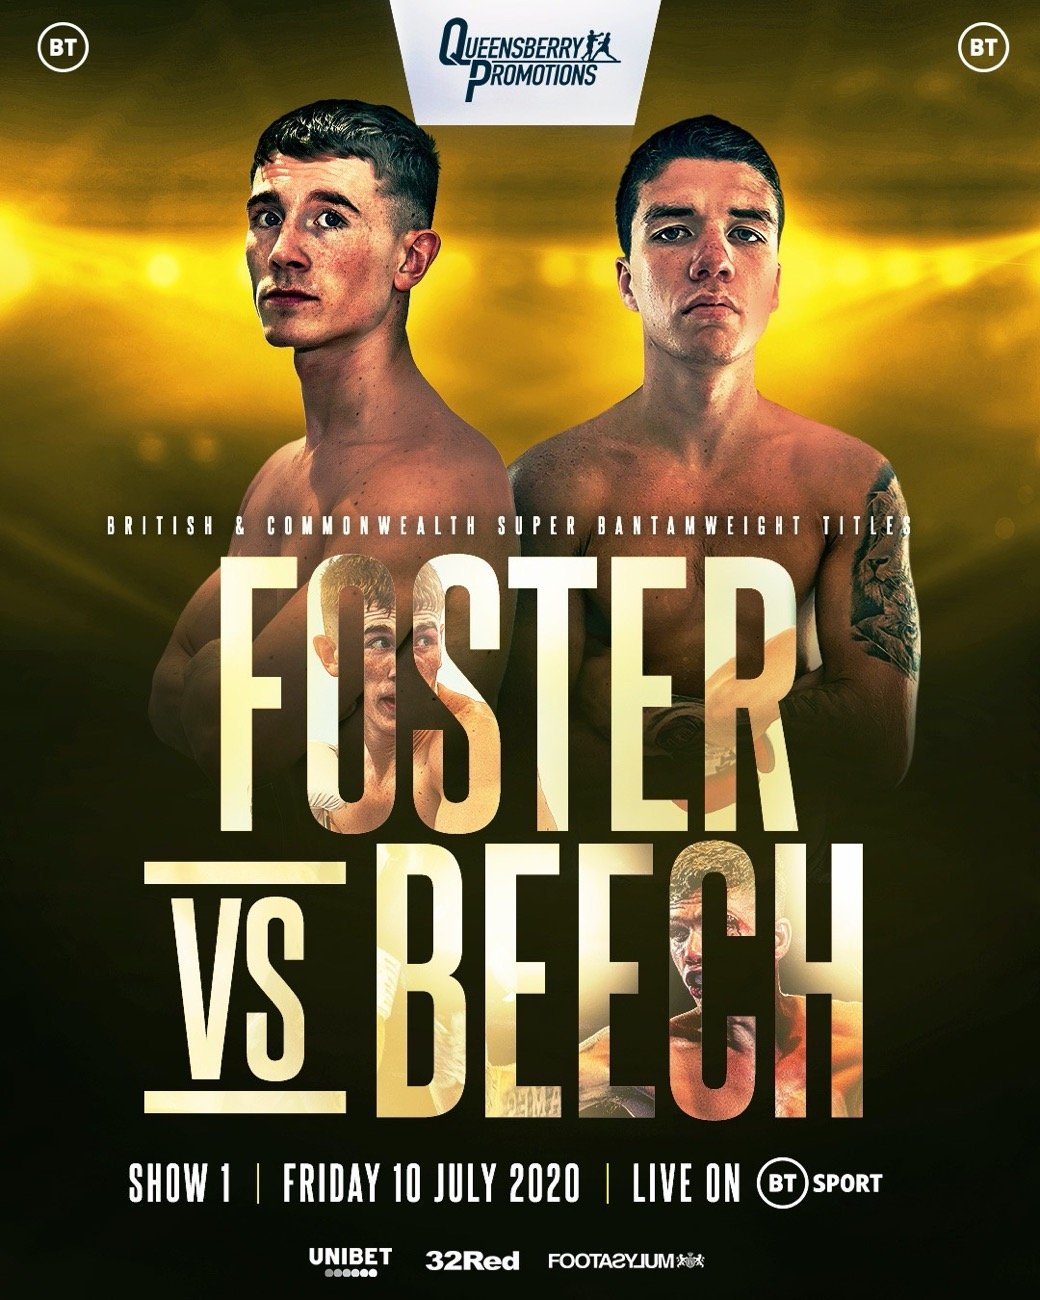 Brad Foster, James Beech - BRAD FOSTER IS looking to pick up where he left off when he makes a return to the ring on July 10 at the BT Sport studios.